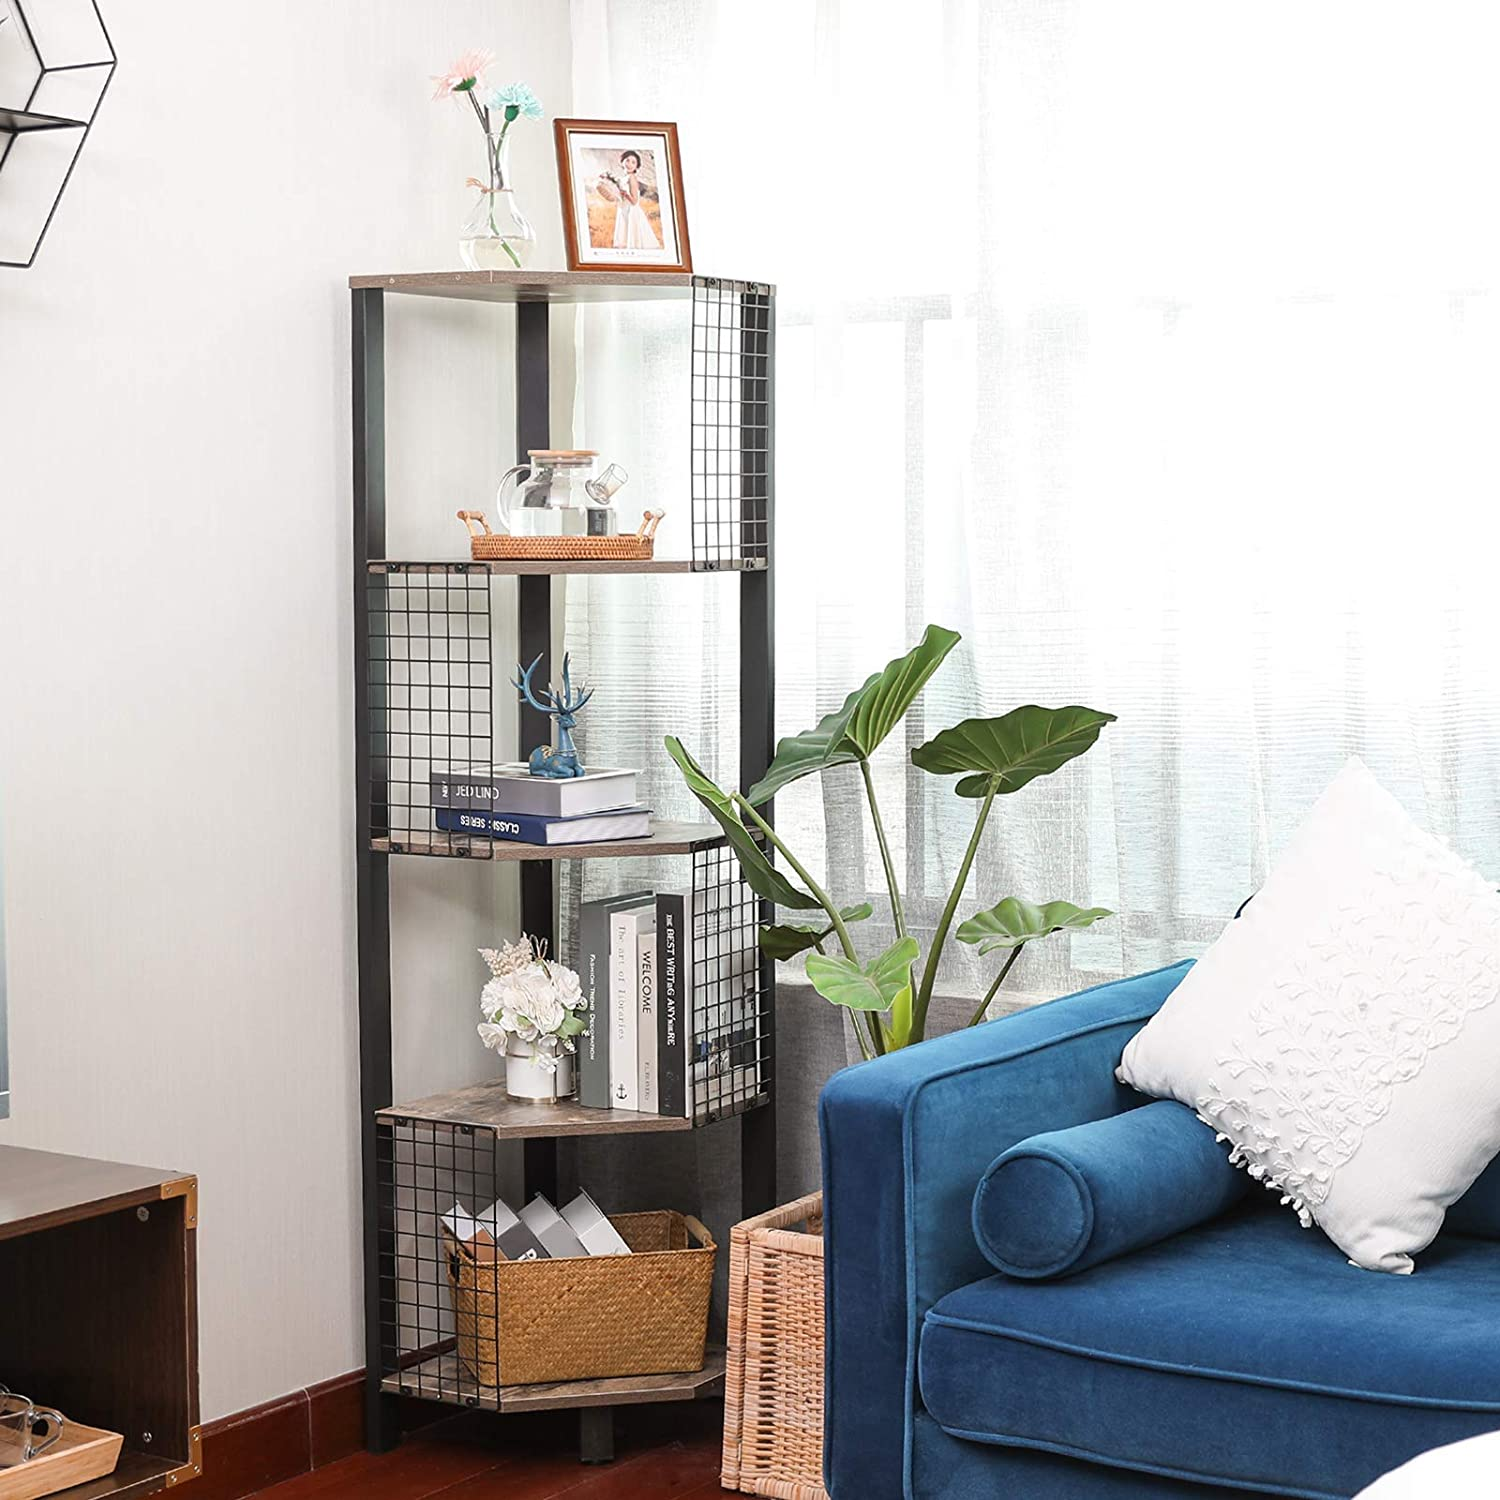 X-cosrack 5 Tier Corner Shelf with Grid Plate, Industrial Corner Storage Display Rack Small Bookcase Plant Stand for Bedroom, Living Room, Bathroom, Kitchen, Home Office, 56.5 Inch Tall, Rustic Brown